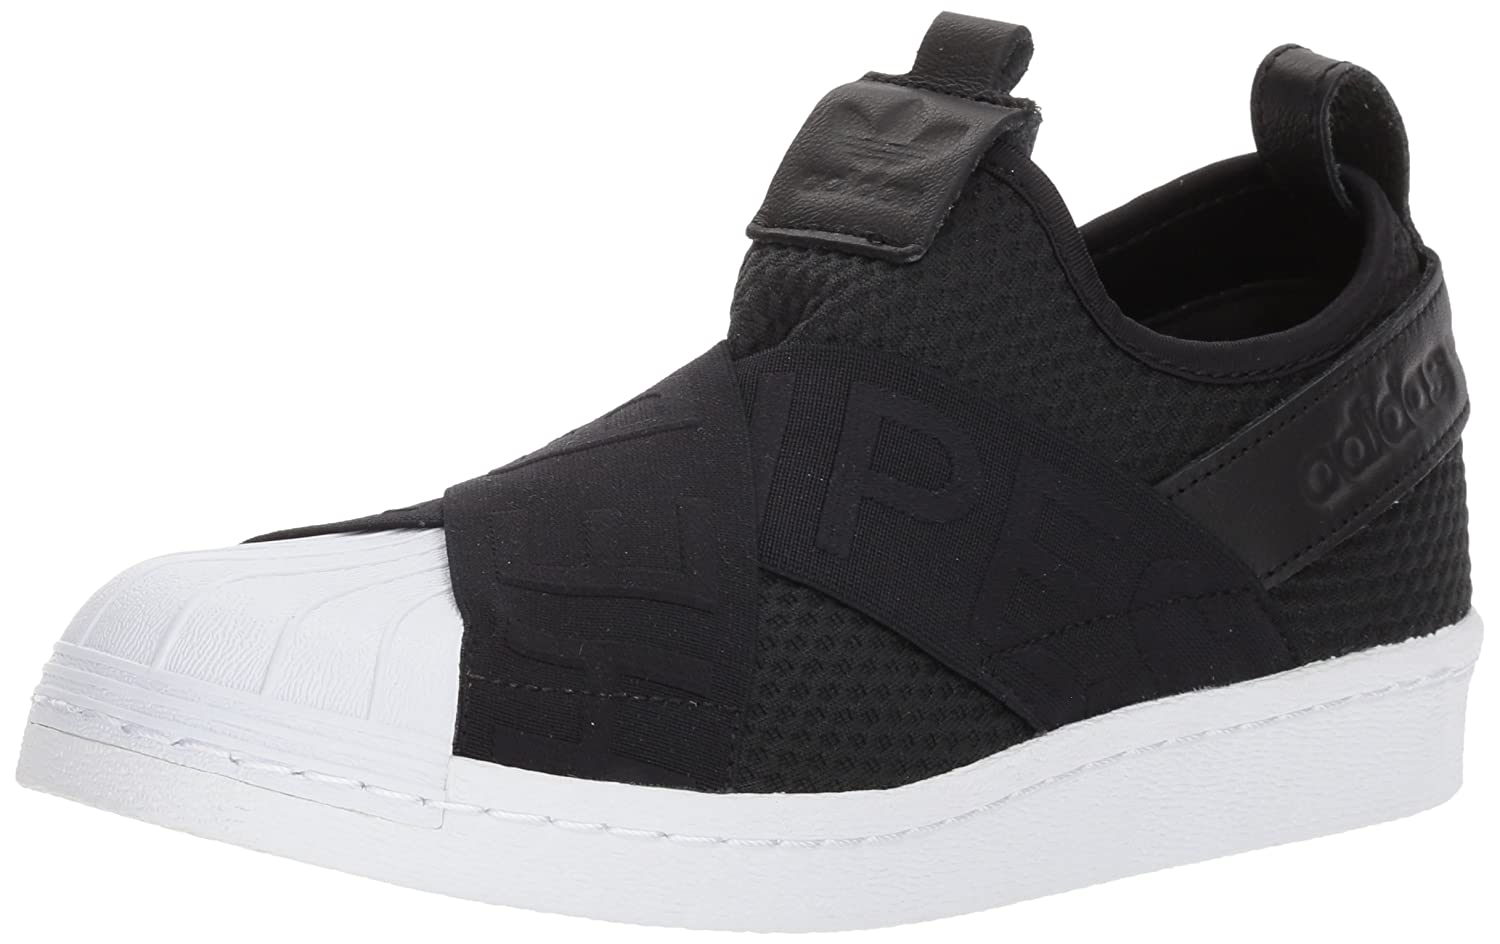 adidas Originals Women's Superstar Slipon W Sneaker B07232KVC5 7 B(M) US|Core Black/Core Black/White